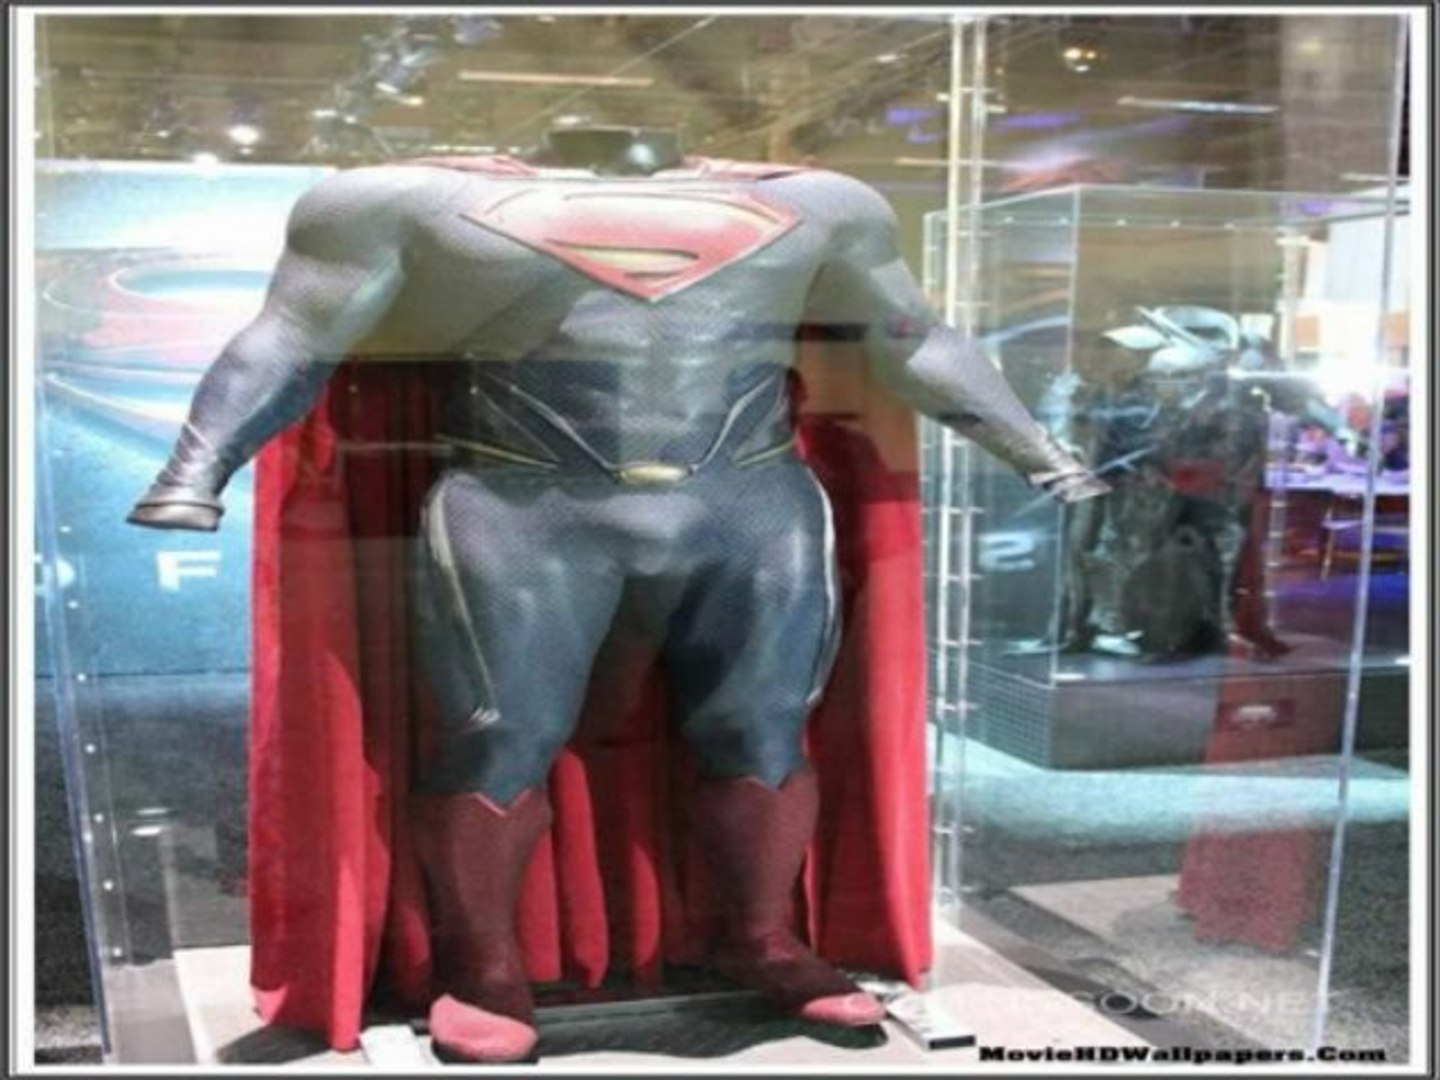 Complete Movie ONLINE Man Of Steel  ++ FREE Movie++ with High Definition 720p [streaming movie 3d]